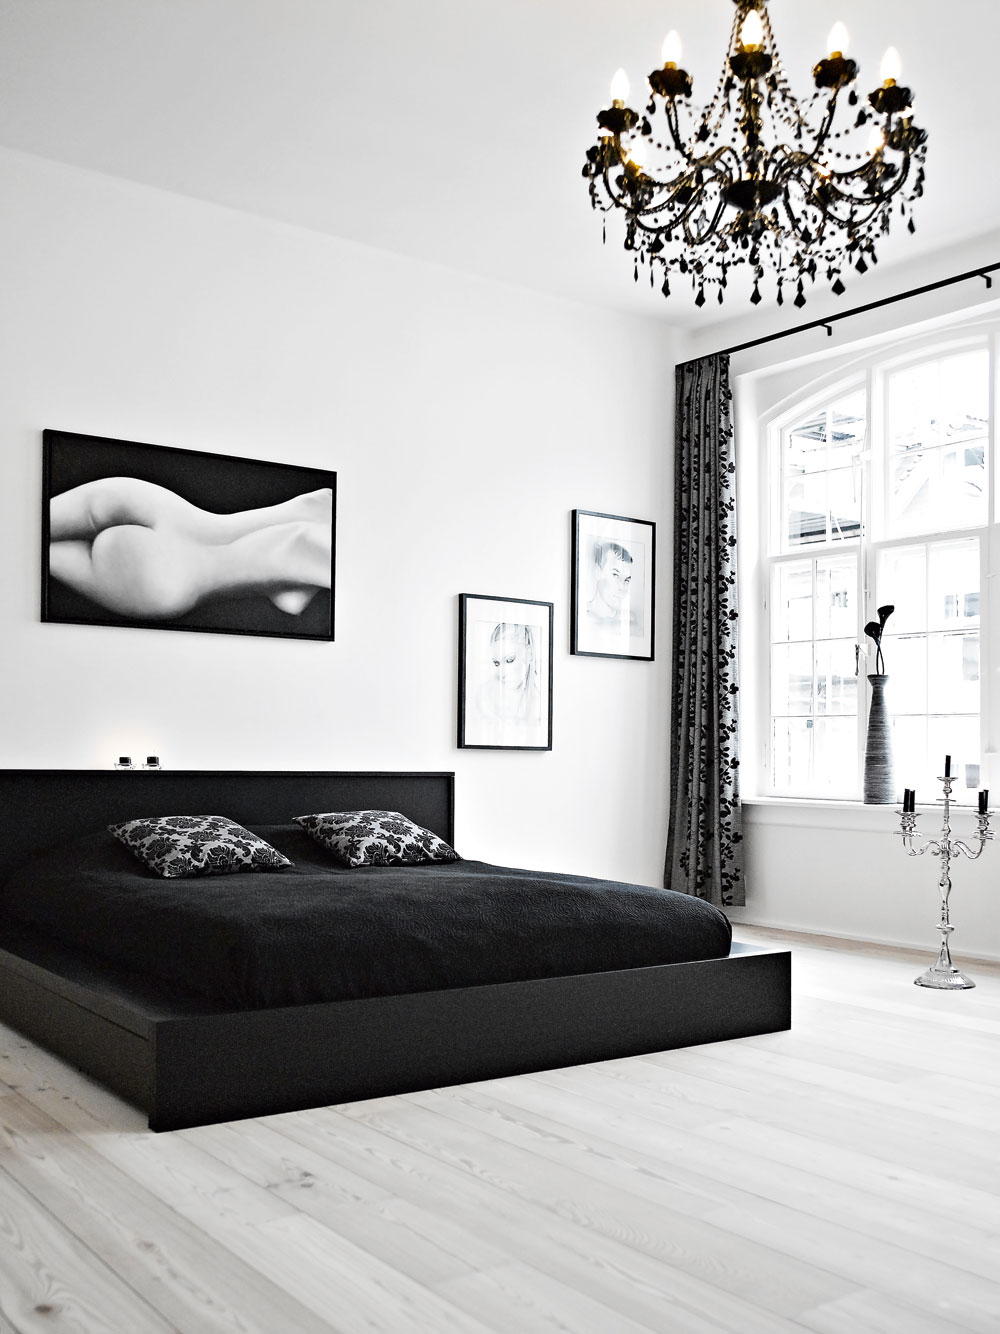 Black and white bedroom tumblr - Black And White Bedroom Tumblr 4